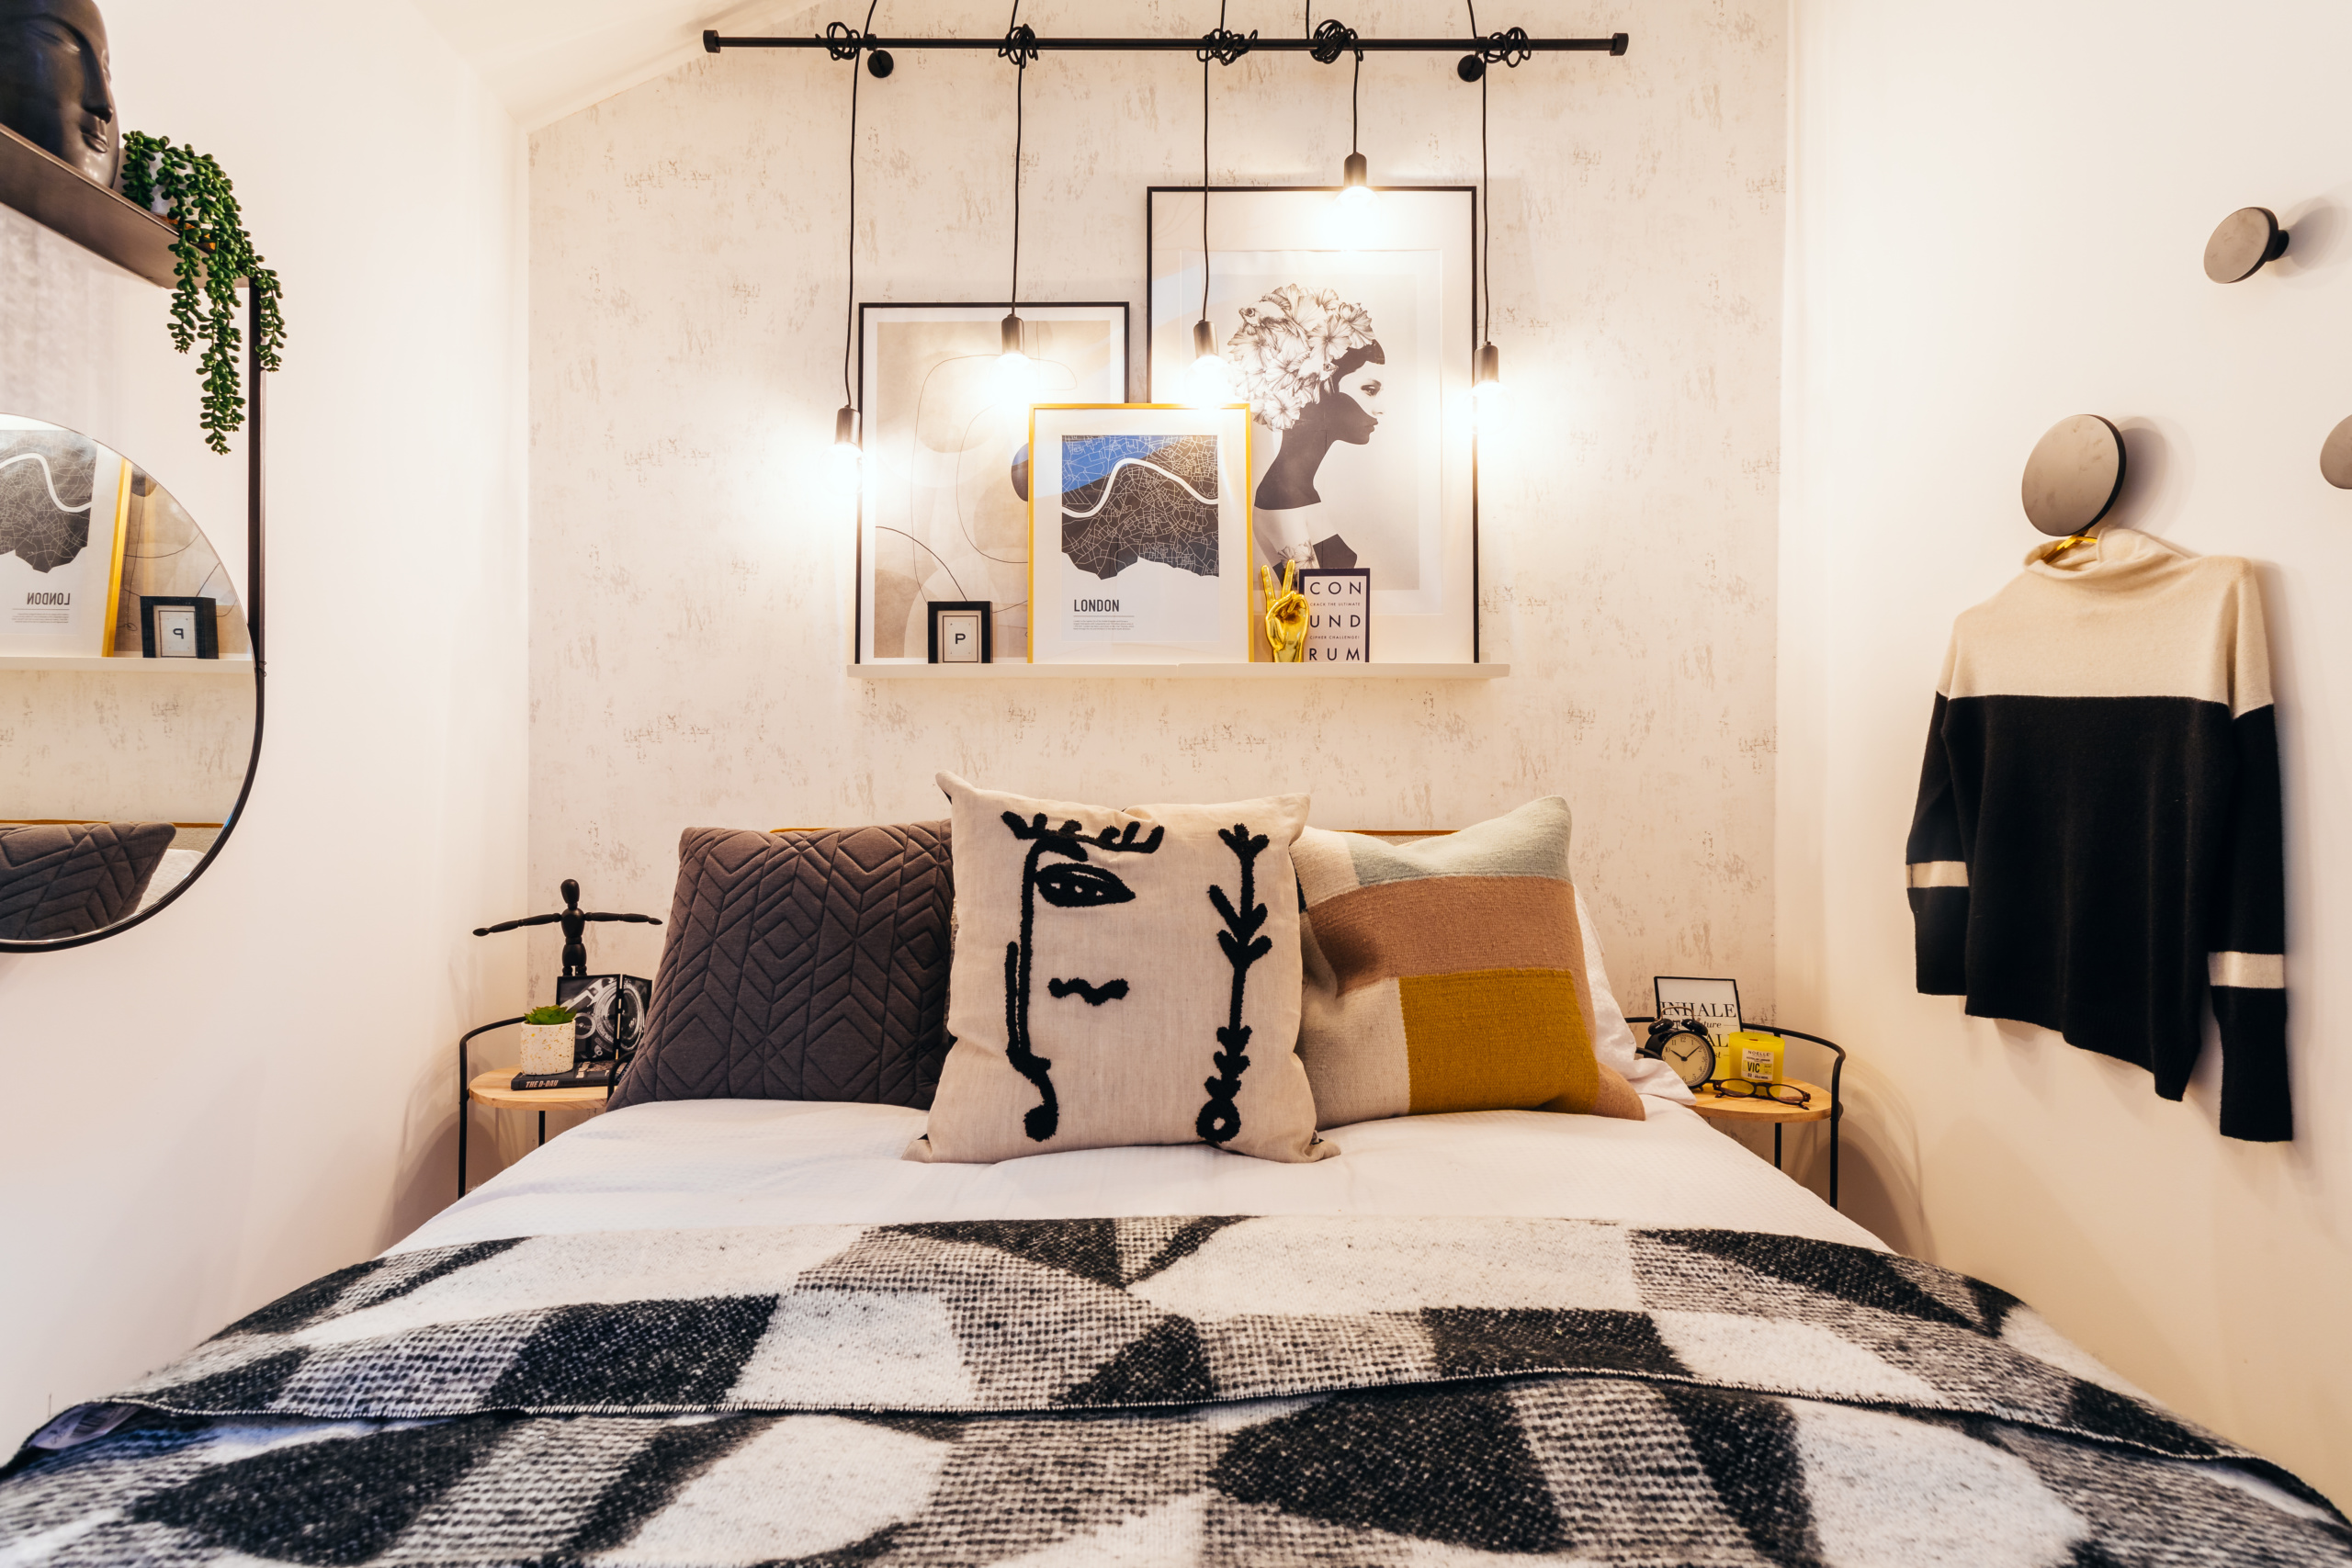 Photograph of the bedroom at the Ironworks Yard development featuring drop pendant lights over a bed.